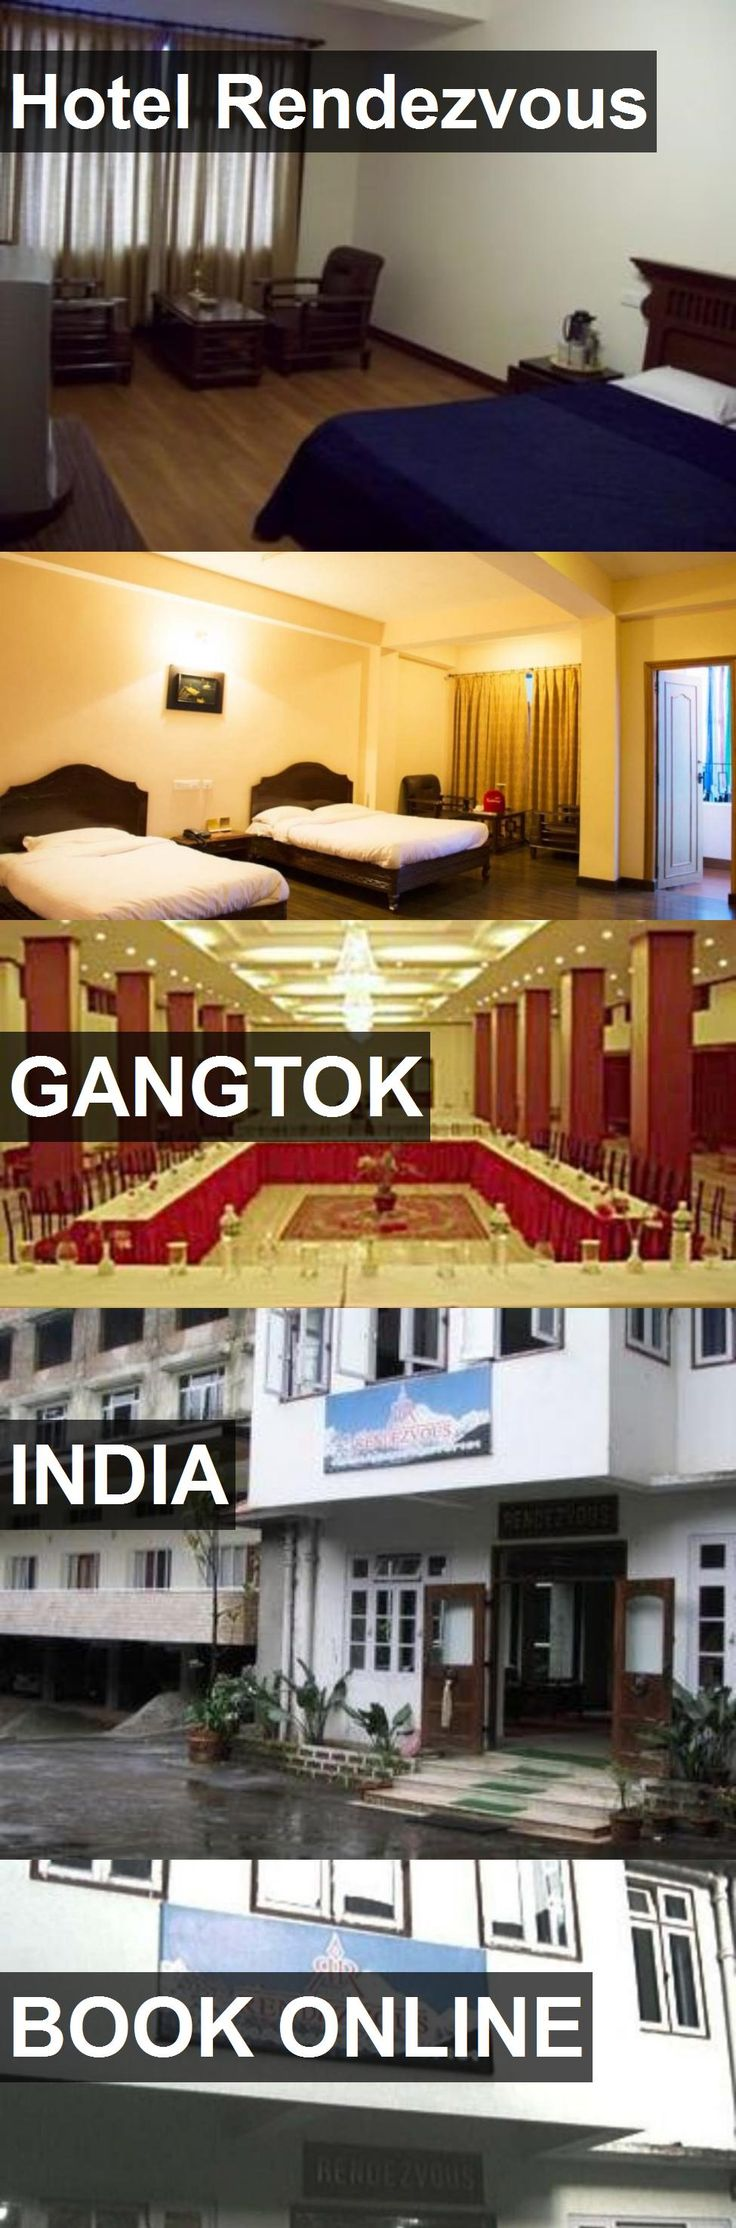 Hotel Rendezvous in Gangtok, India. For more information, photos, reviews and best prices please follow the link. #India #Gangtok #travel #vacation #hotel